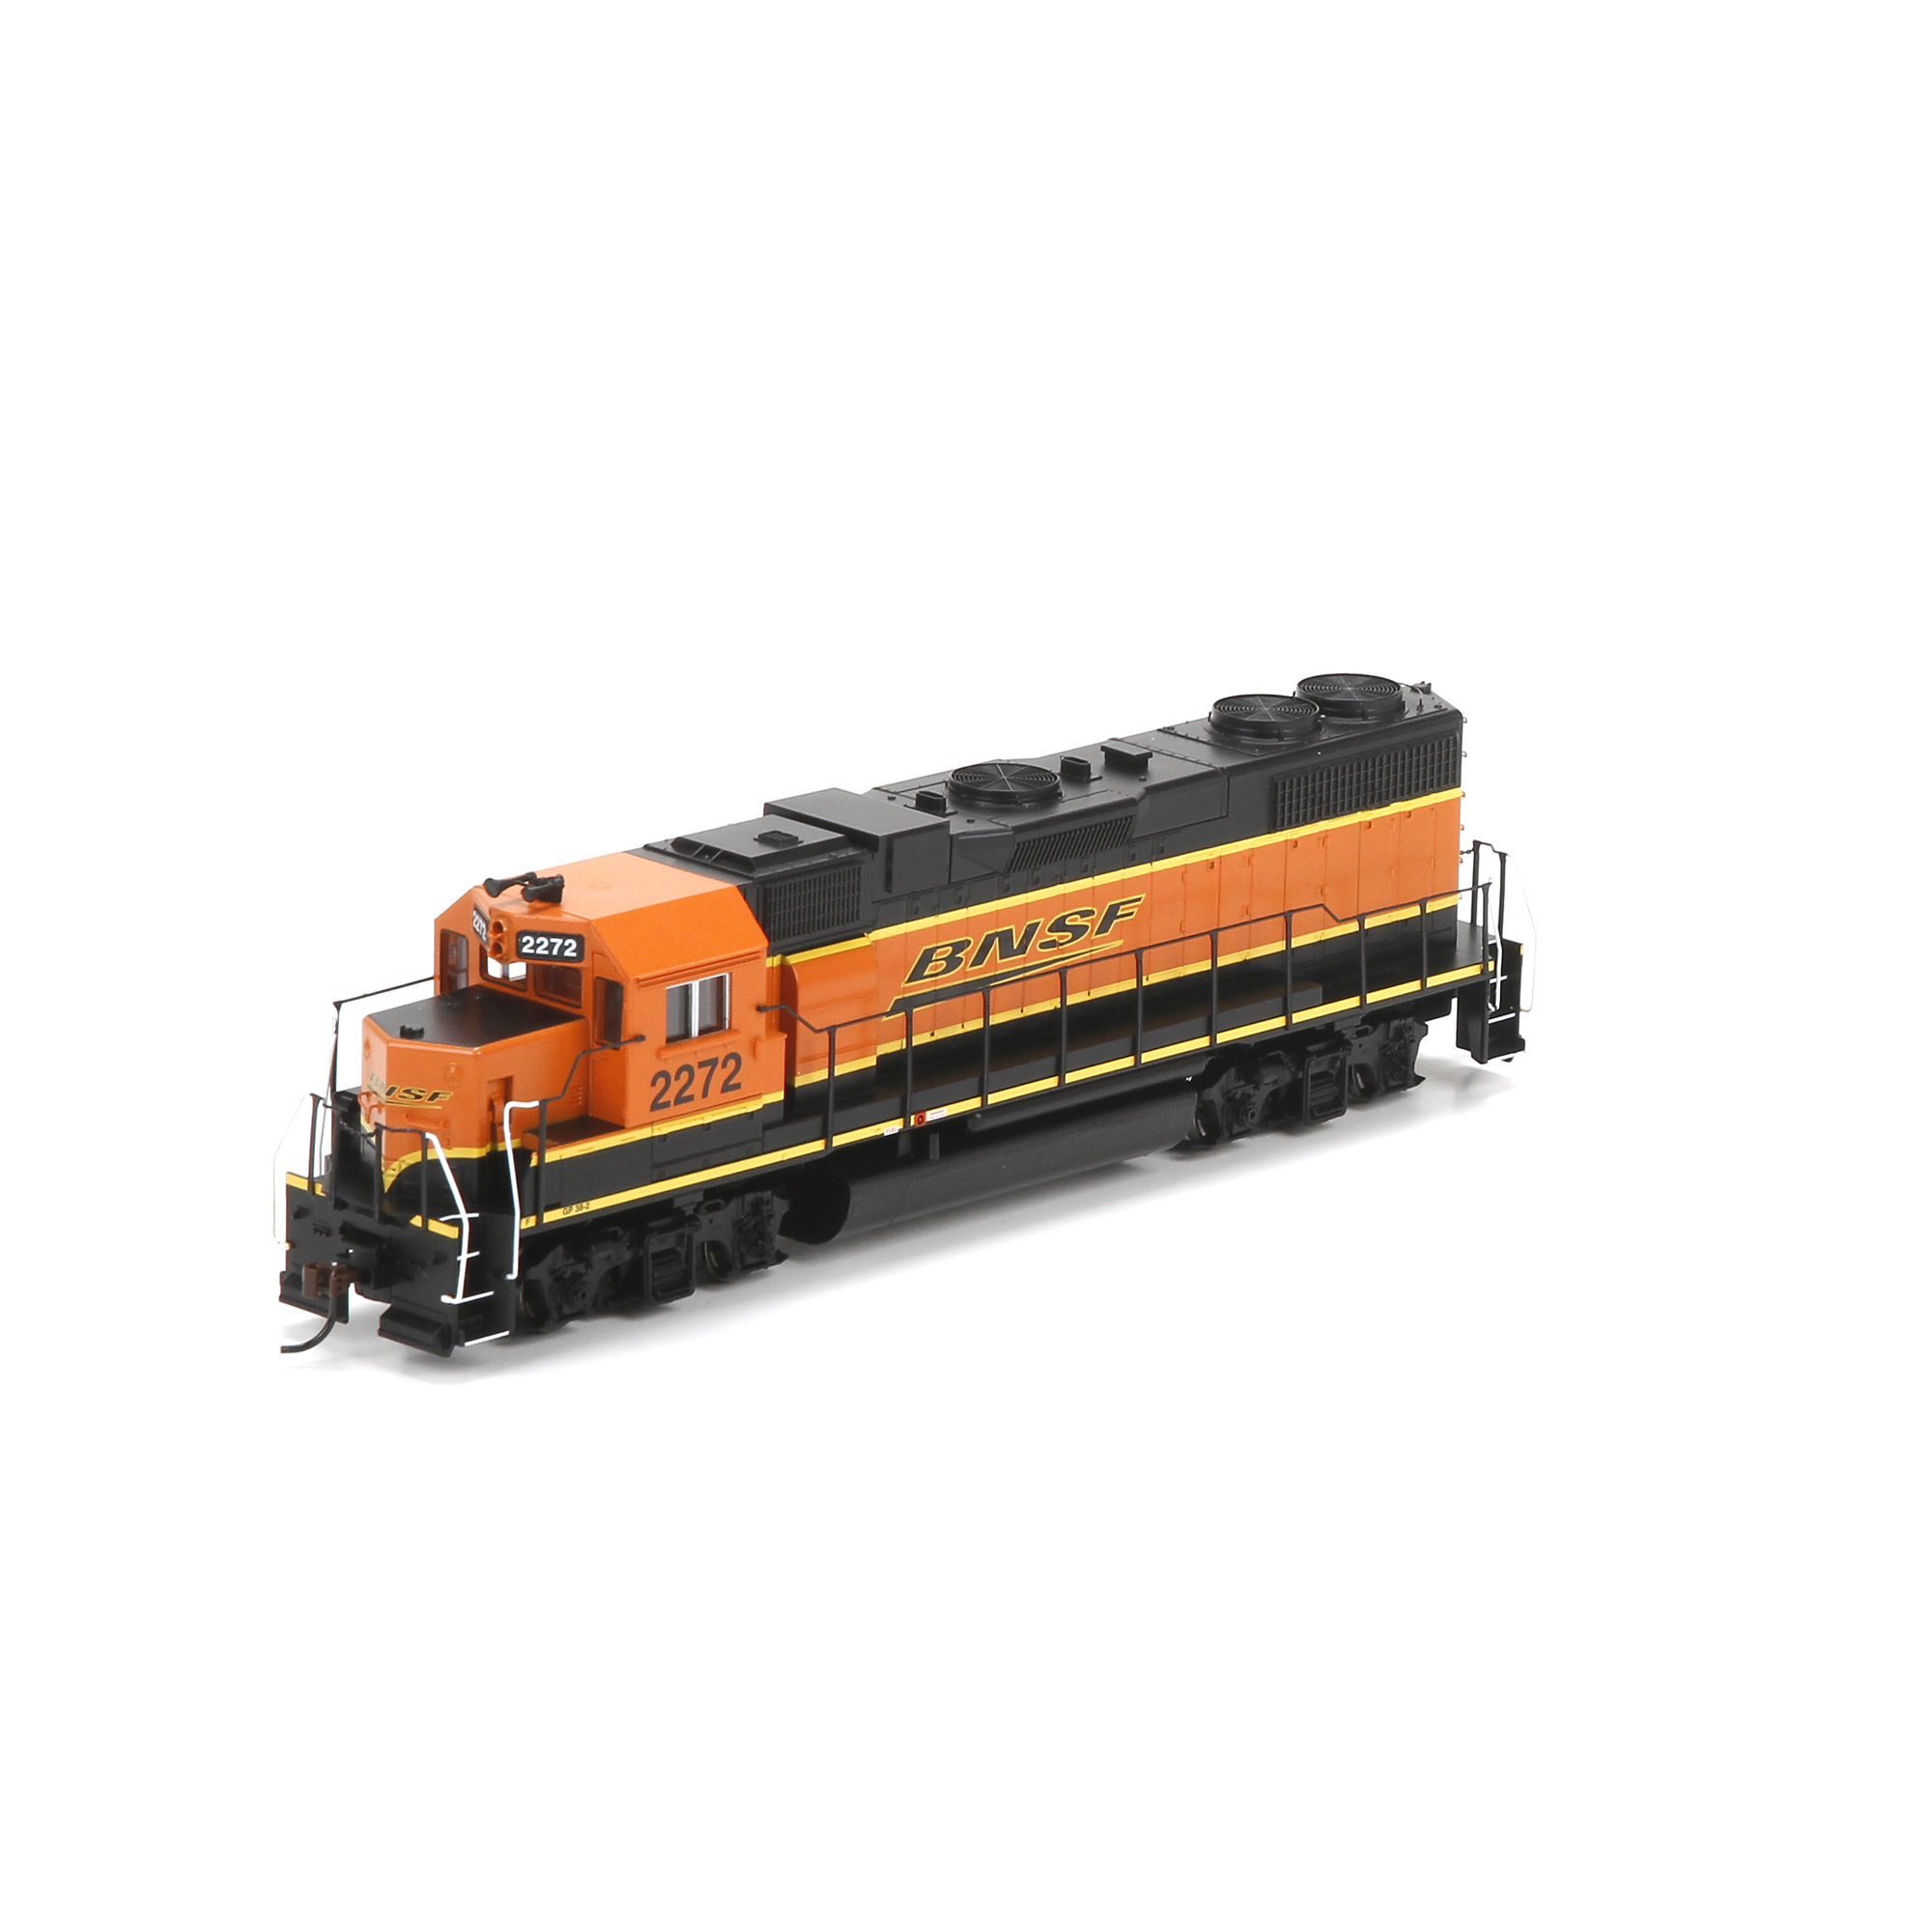 HO RTR GP38-2, BNSF/Wedge #2272